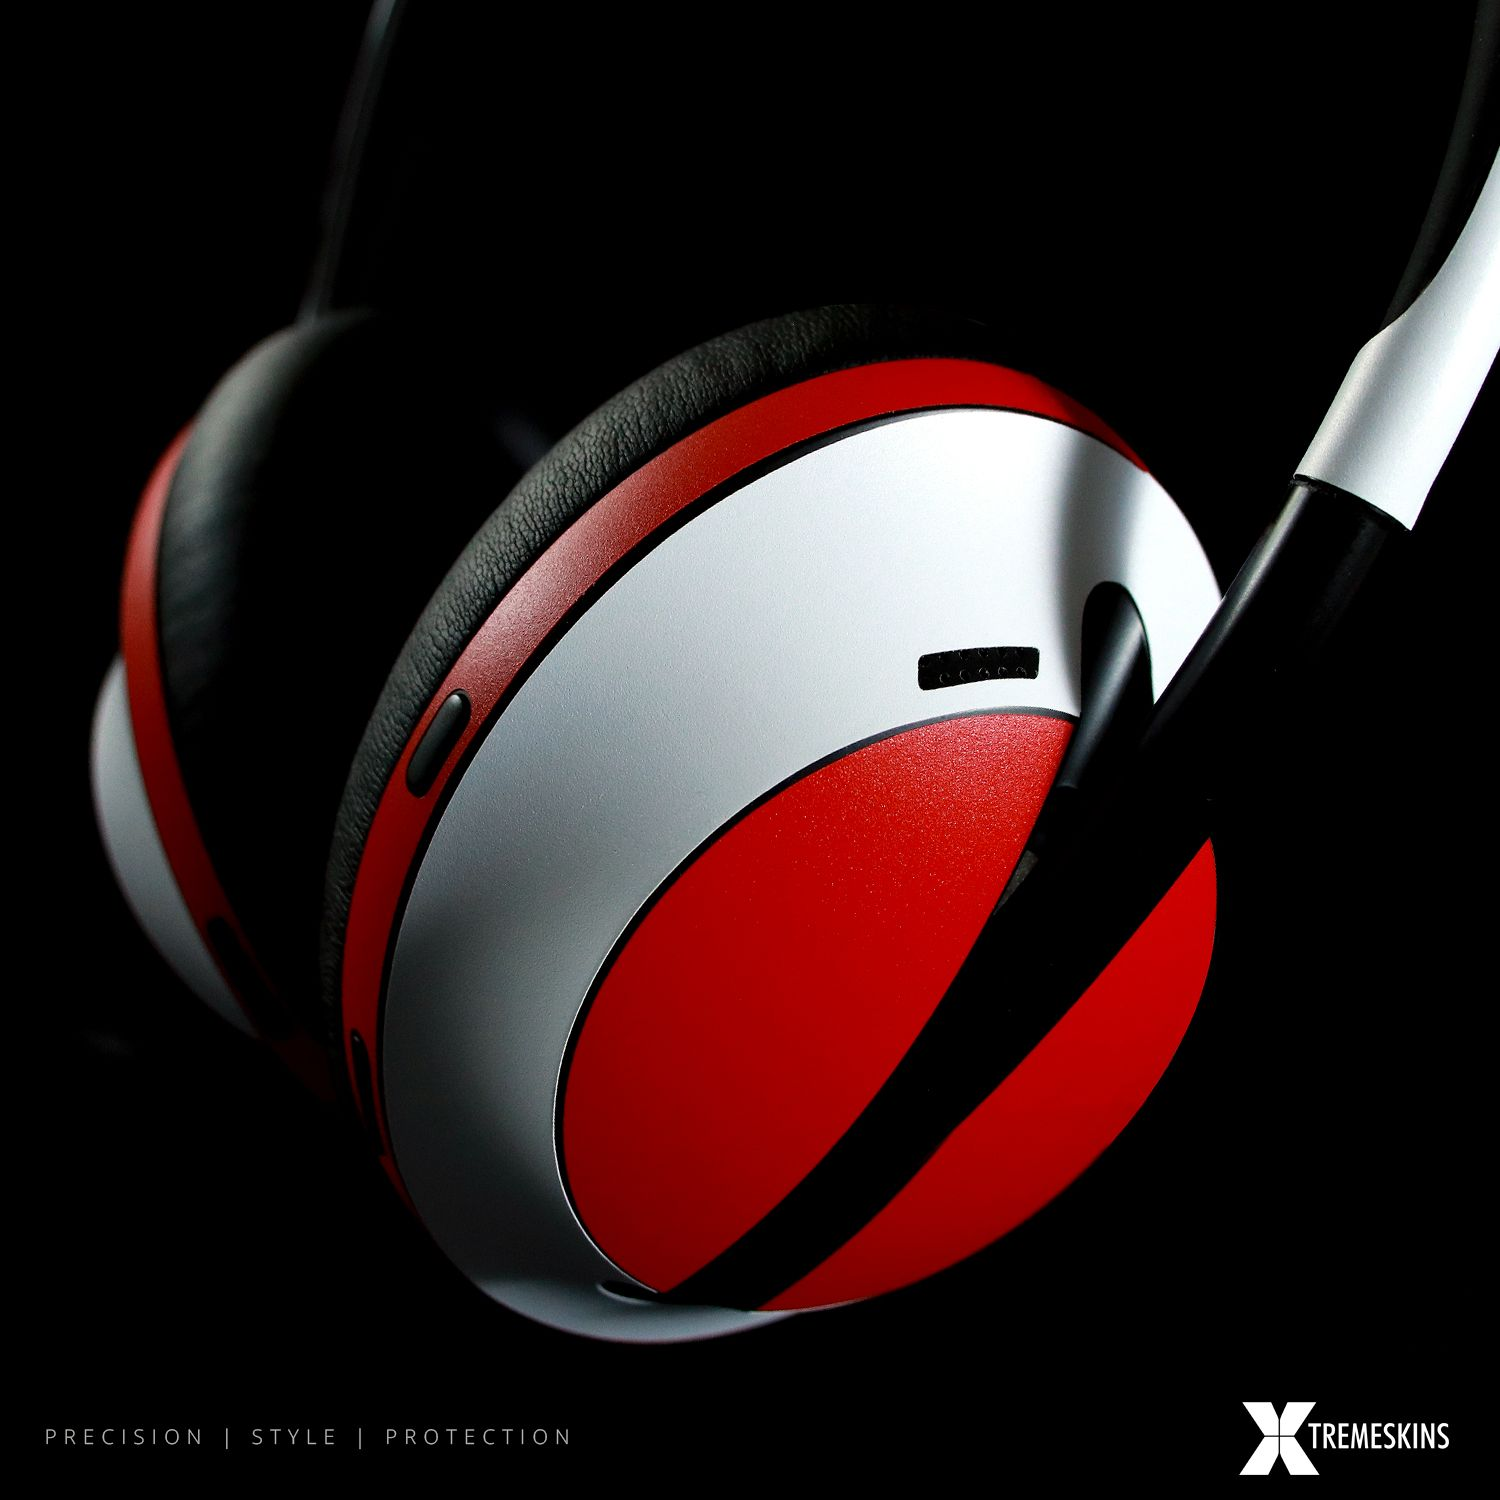 Bose 700 Noise Cancelling Headphones Matt Red And Matt White Skin Noise Cancelling Headphones Noise Cancelling Headphones Design